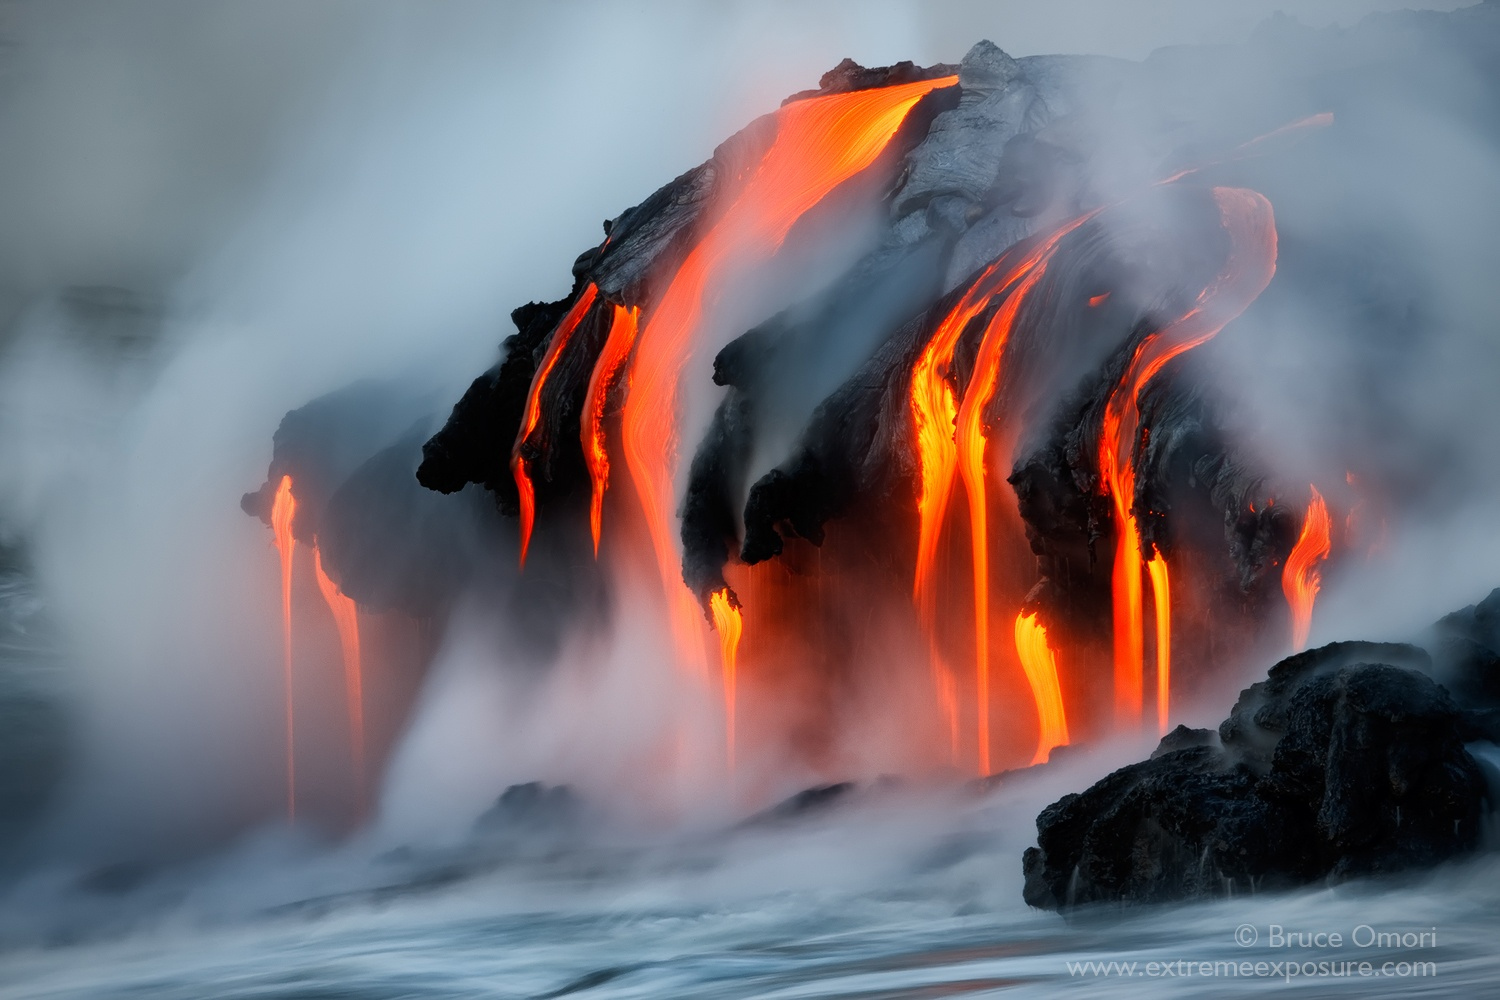 The Hottest Photos on 500px: 25 Fiery Lava Shots by Bruce Omori